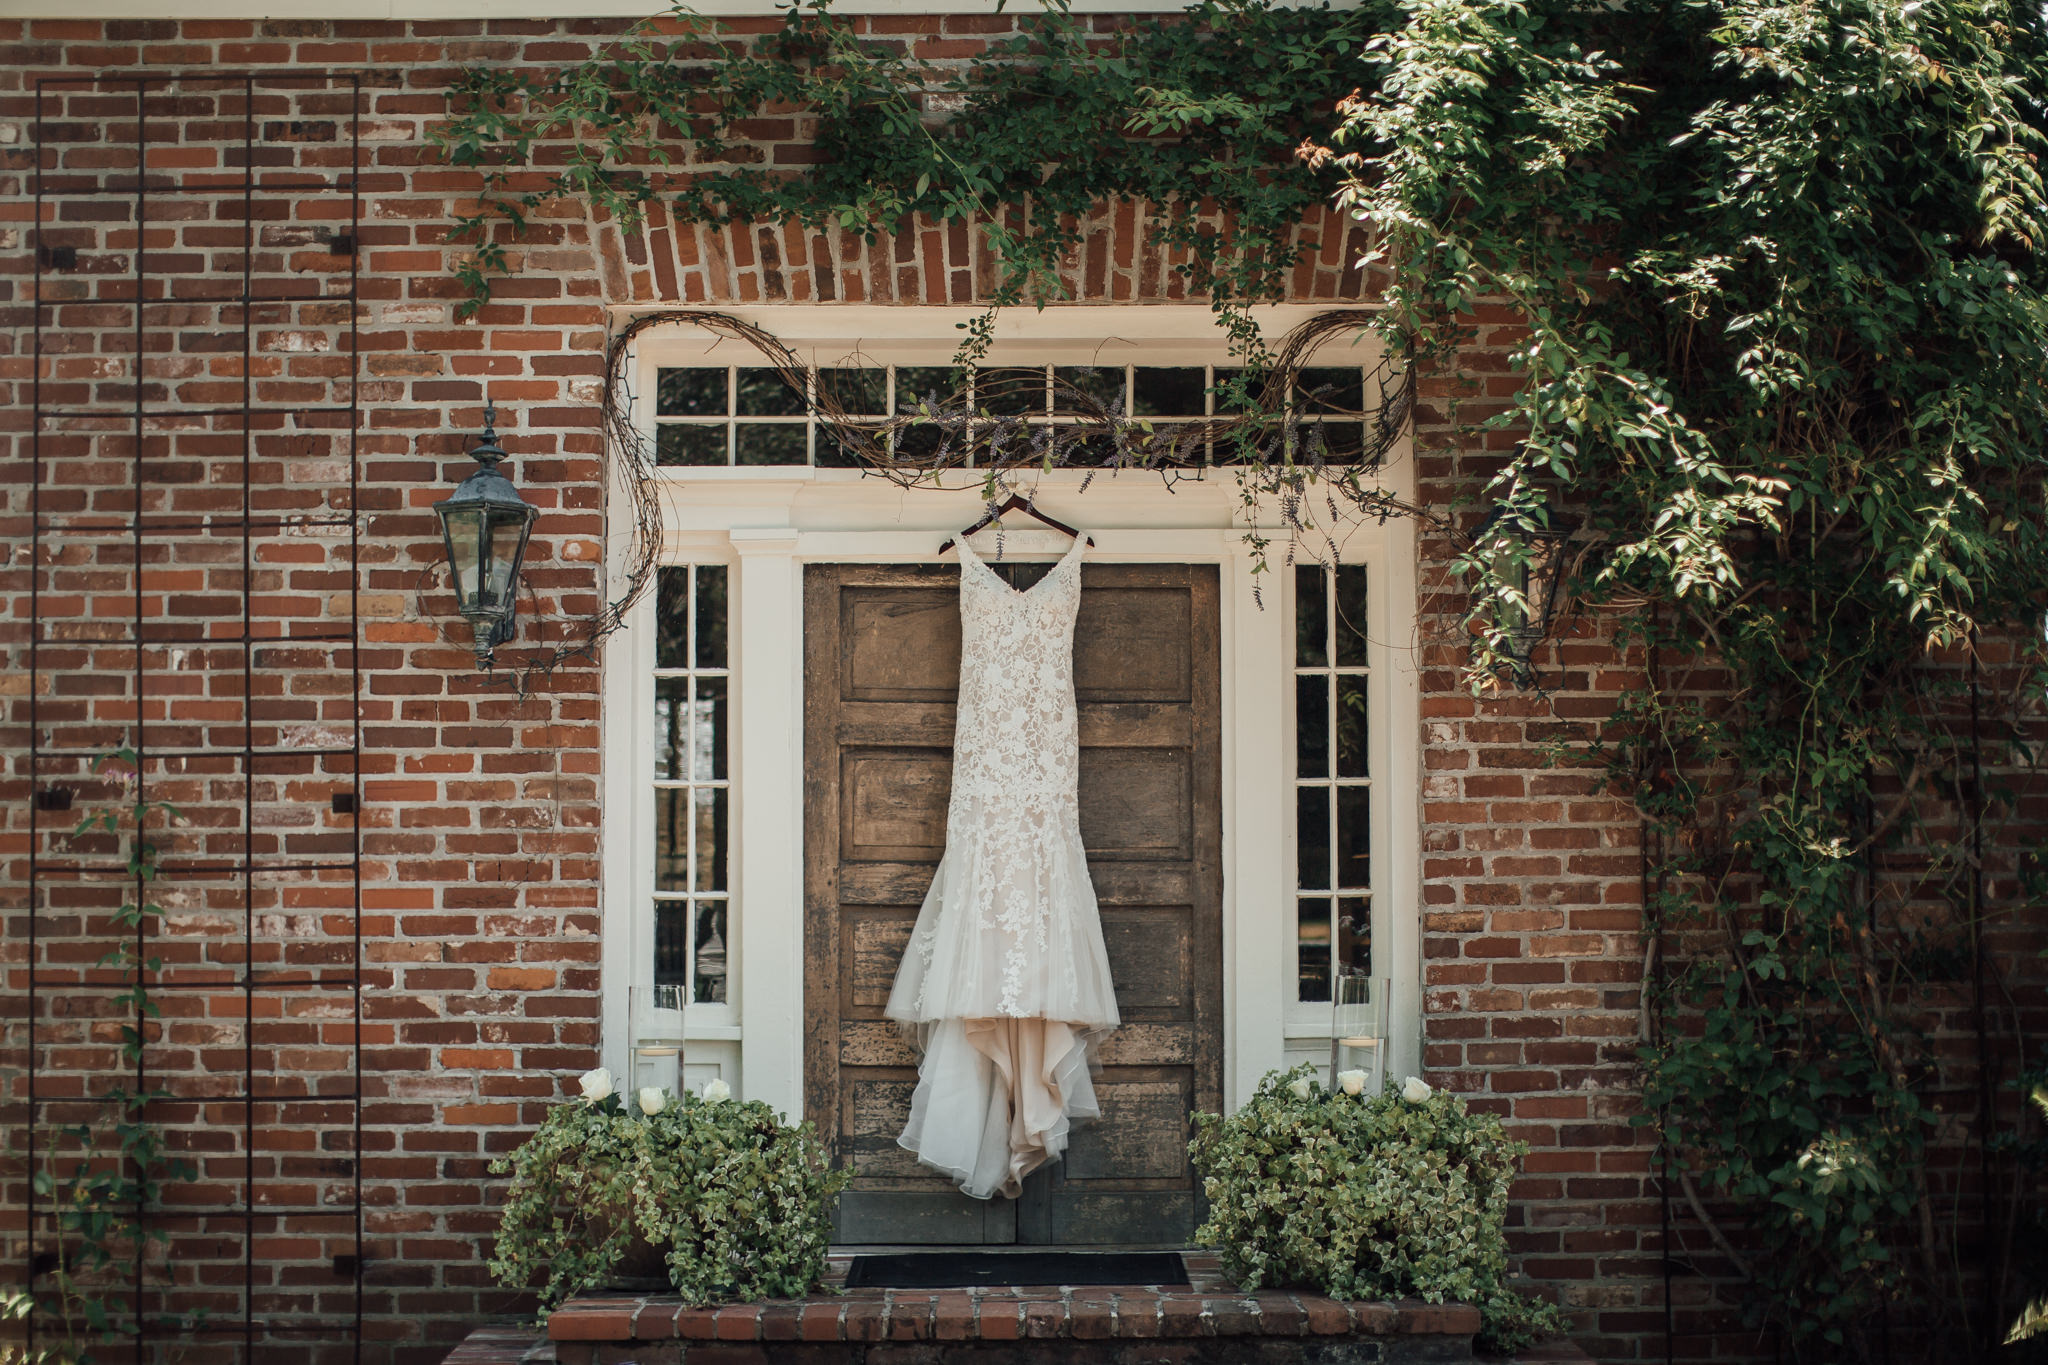 cassie-cook-photography-memphis-wedding-photographer-hedge-farm-wedding-venue-56.jpg